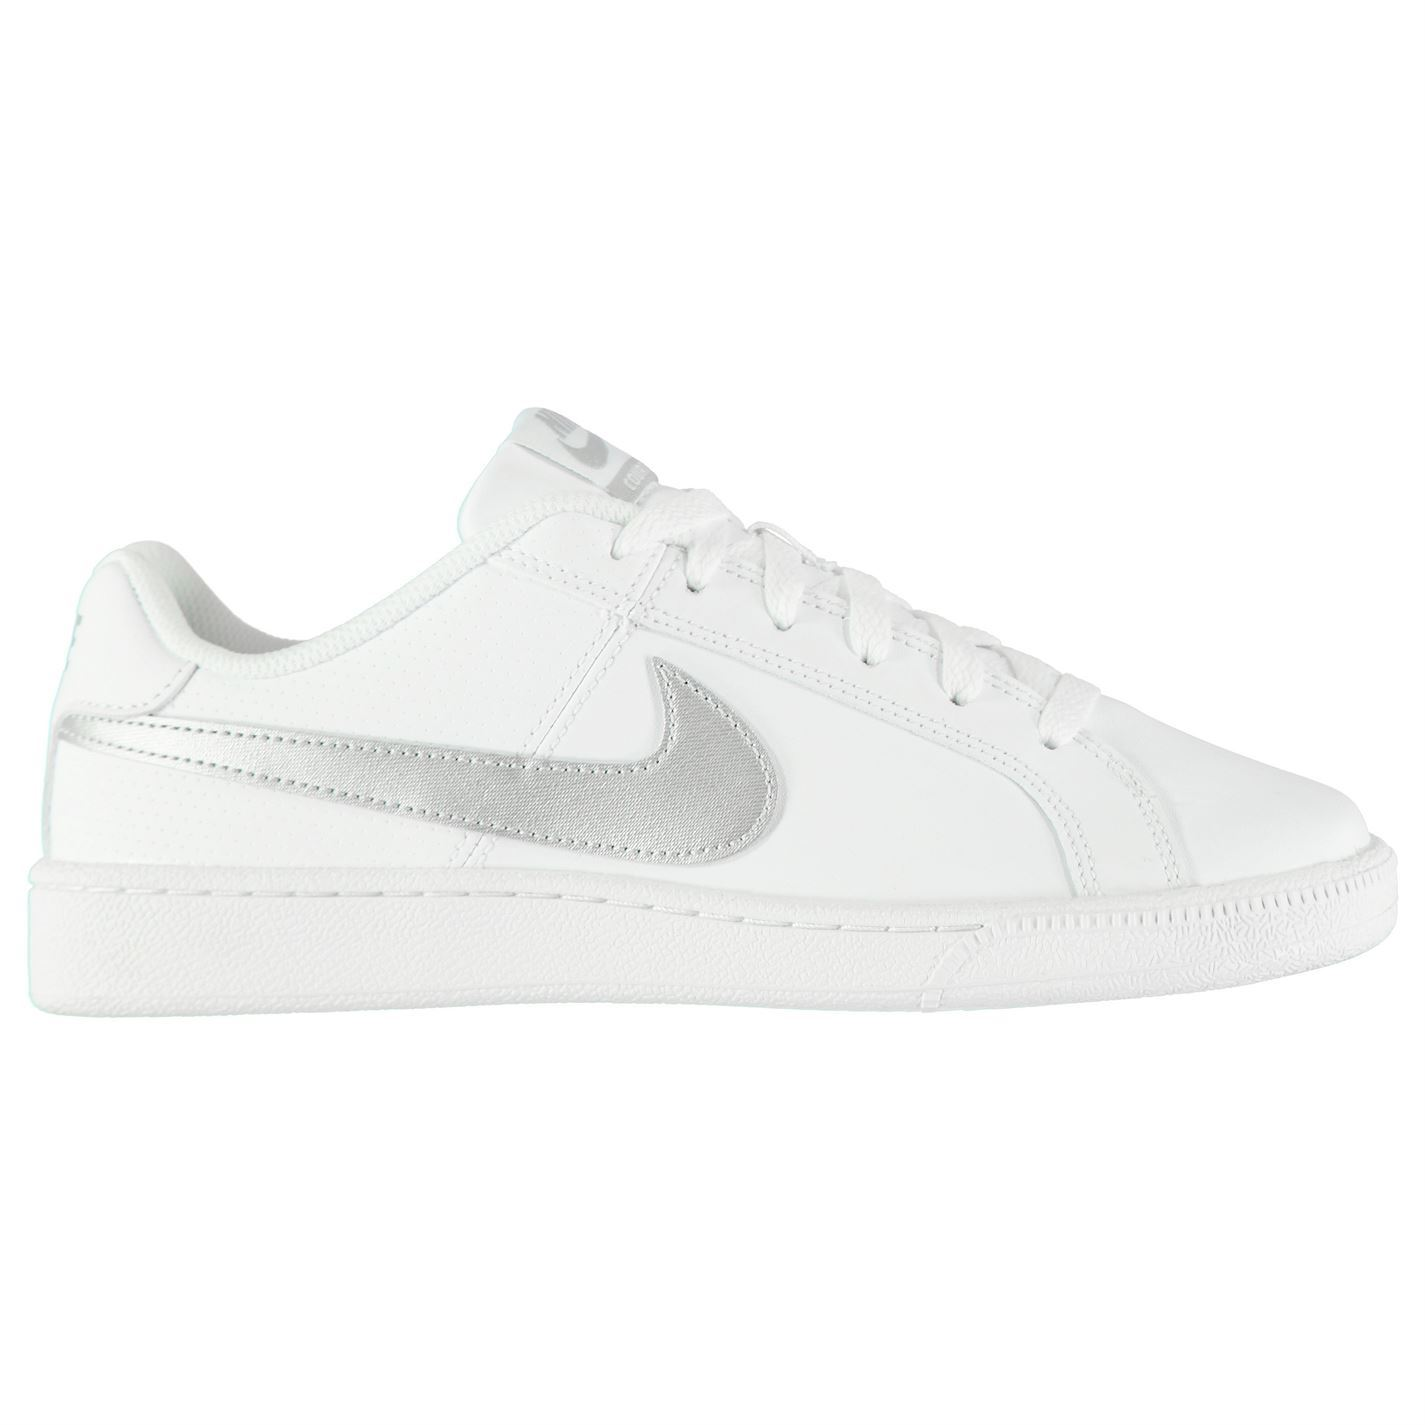 Details about Nike Court Royale Trainers Womens WhiteSilver Sports Trainers Sneakers